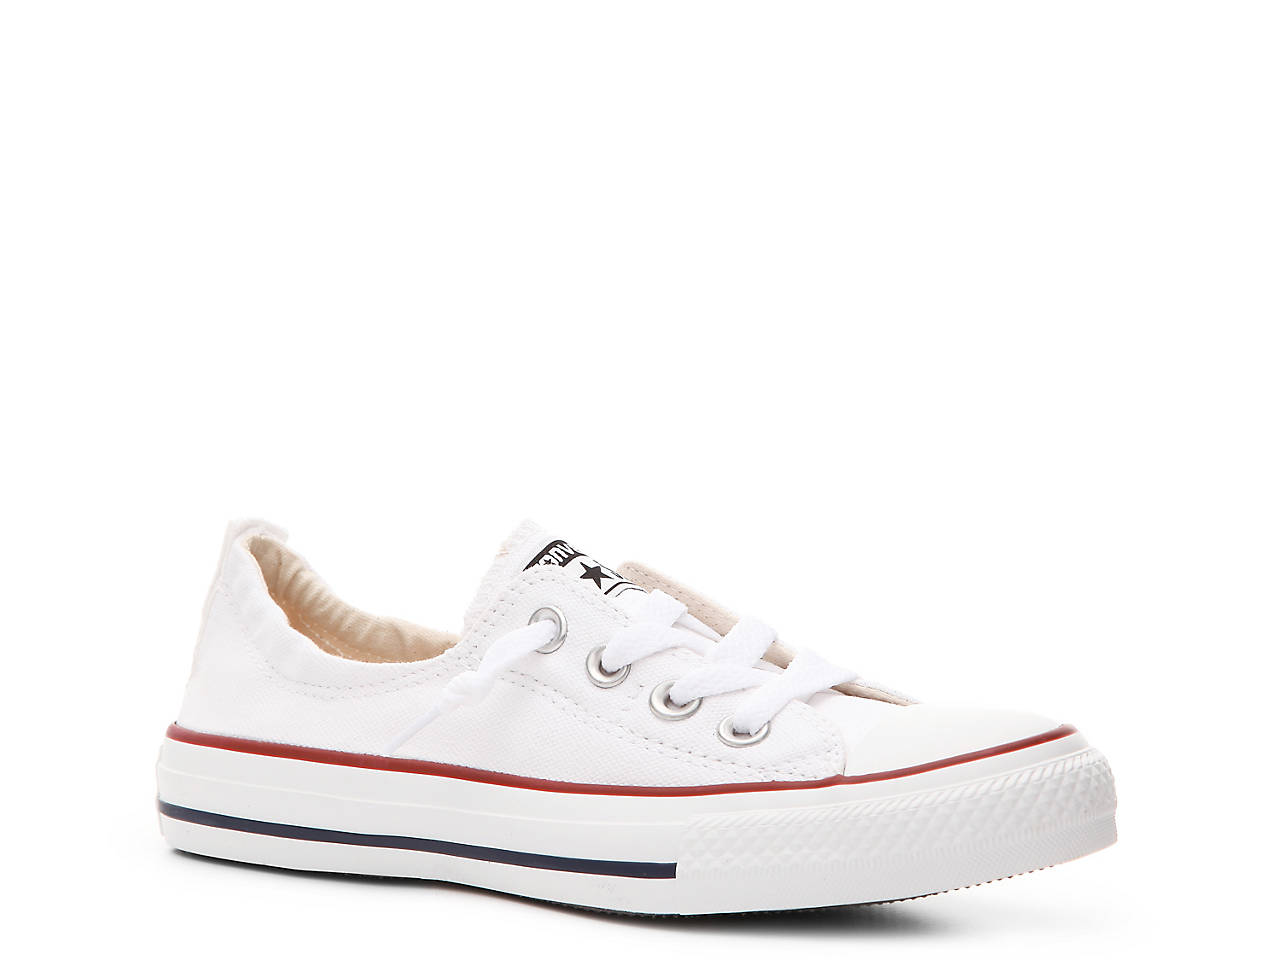 6cb892042dc4 Converse Chuck Taylor All Star Shoreline Slip-On Sneaker - Women s ...